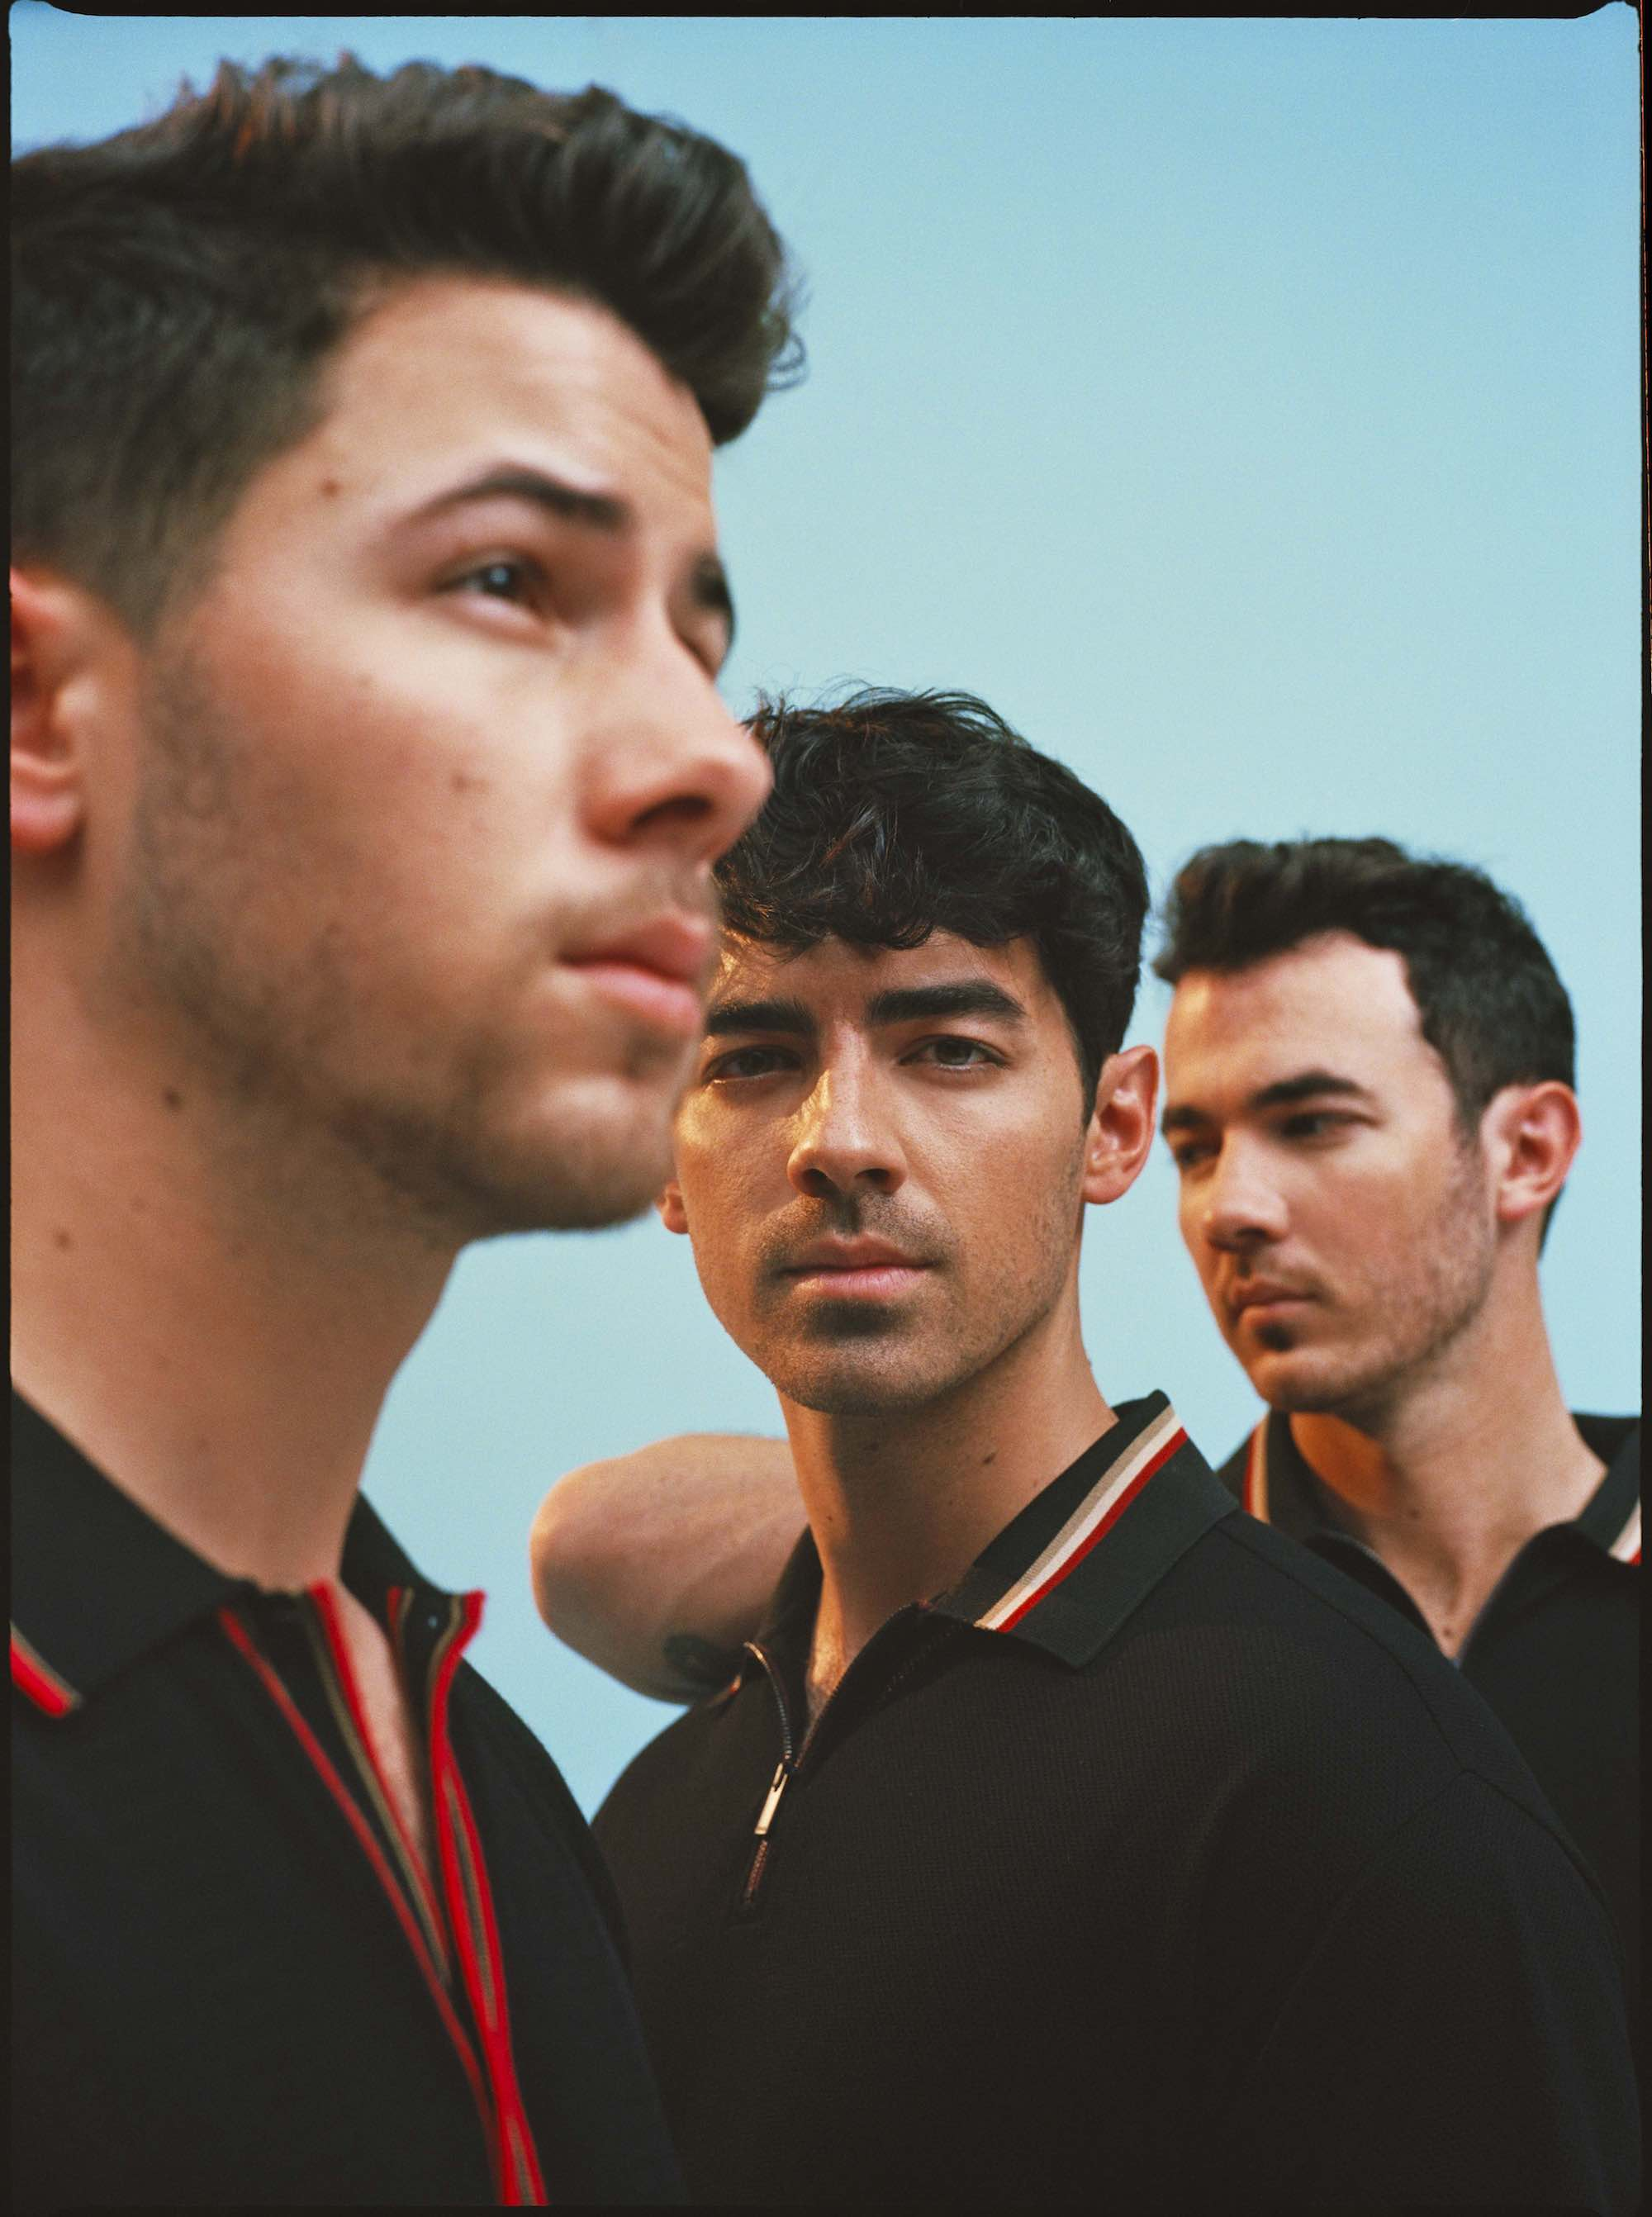 Jonas Brothers for the Summer 2019 cover of Wonderland interview different angles